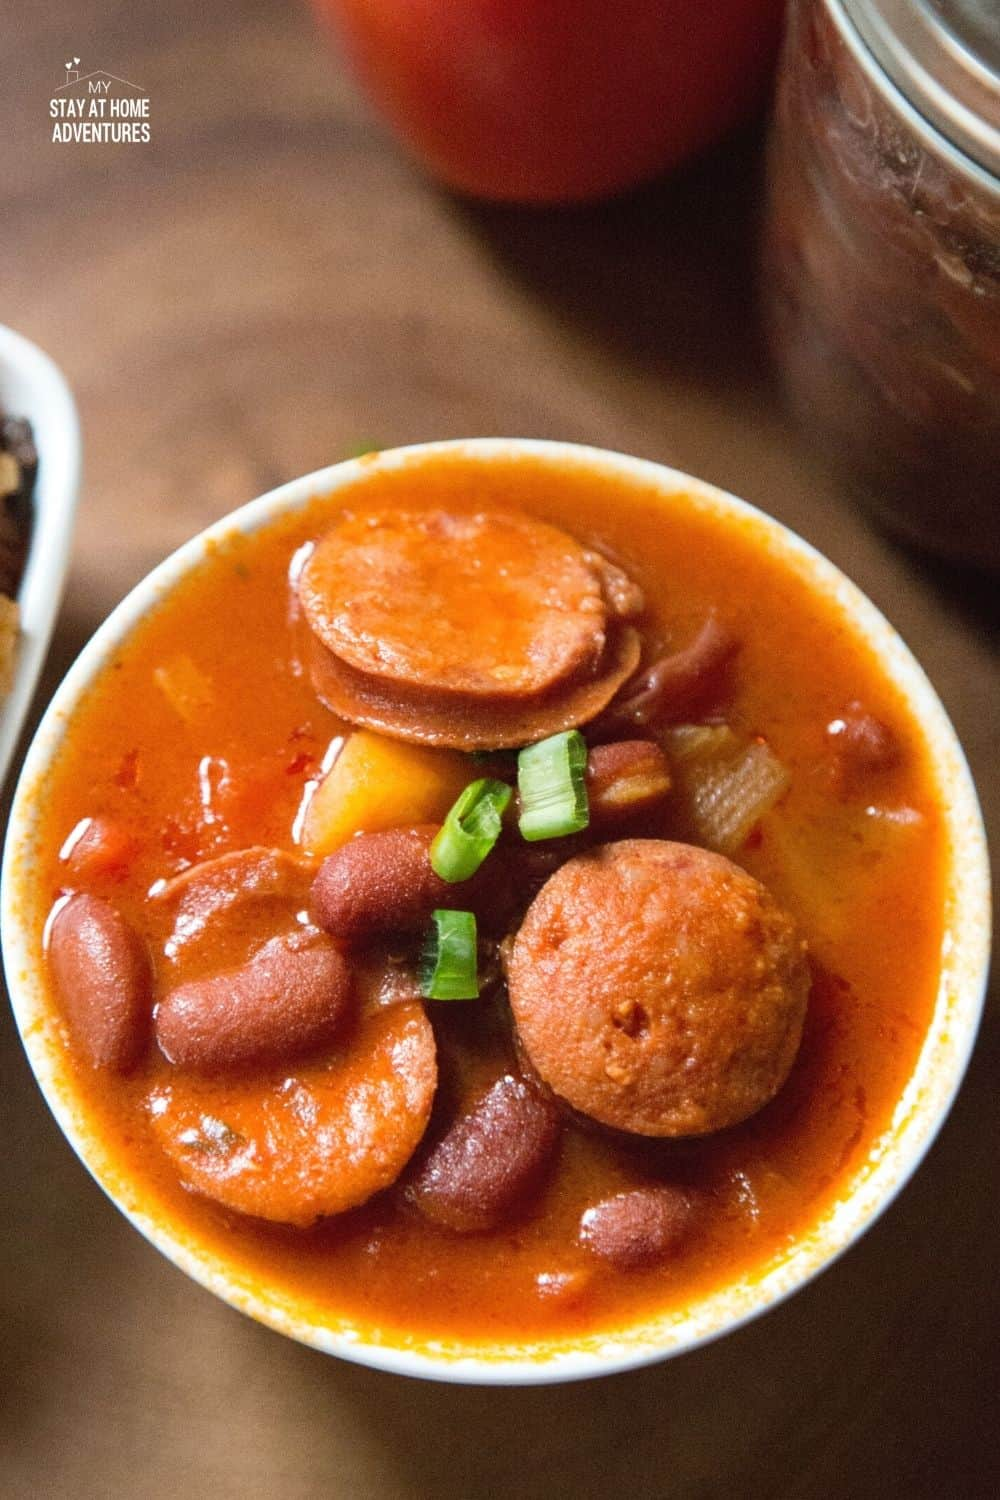 You can enjoy this Puerto Rican Stewed Beans with Sausage in no time by creating it using a rice cooker. Dump and Go recipe. #puertoricanfood #ricecookerrecipe #dumpandgorecipe #beanrecipe via @mystayathome